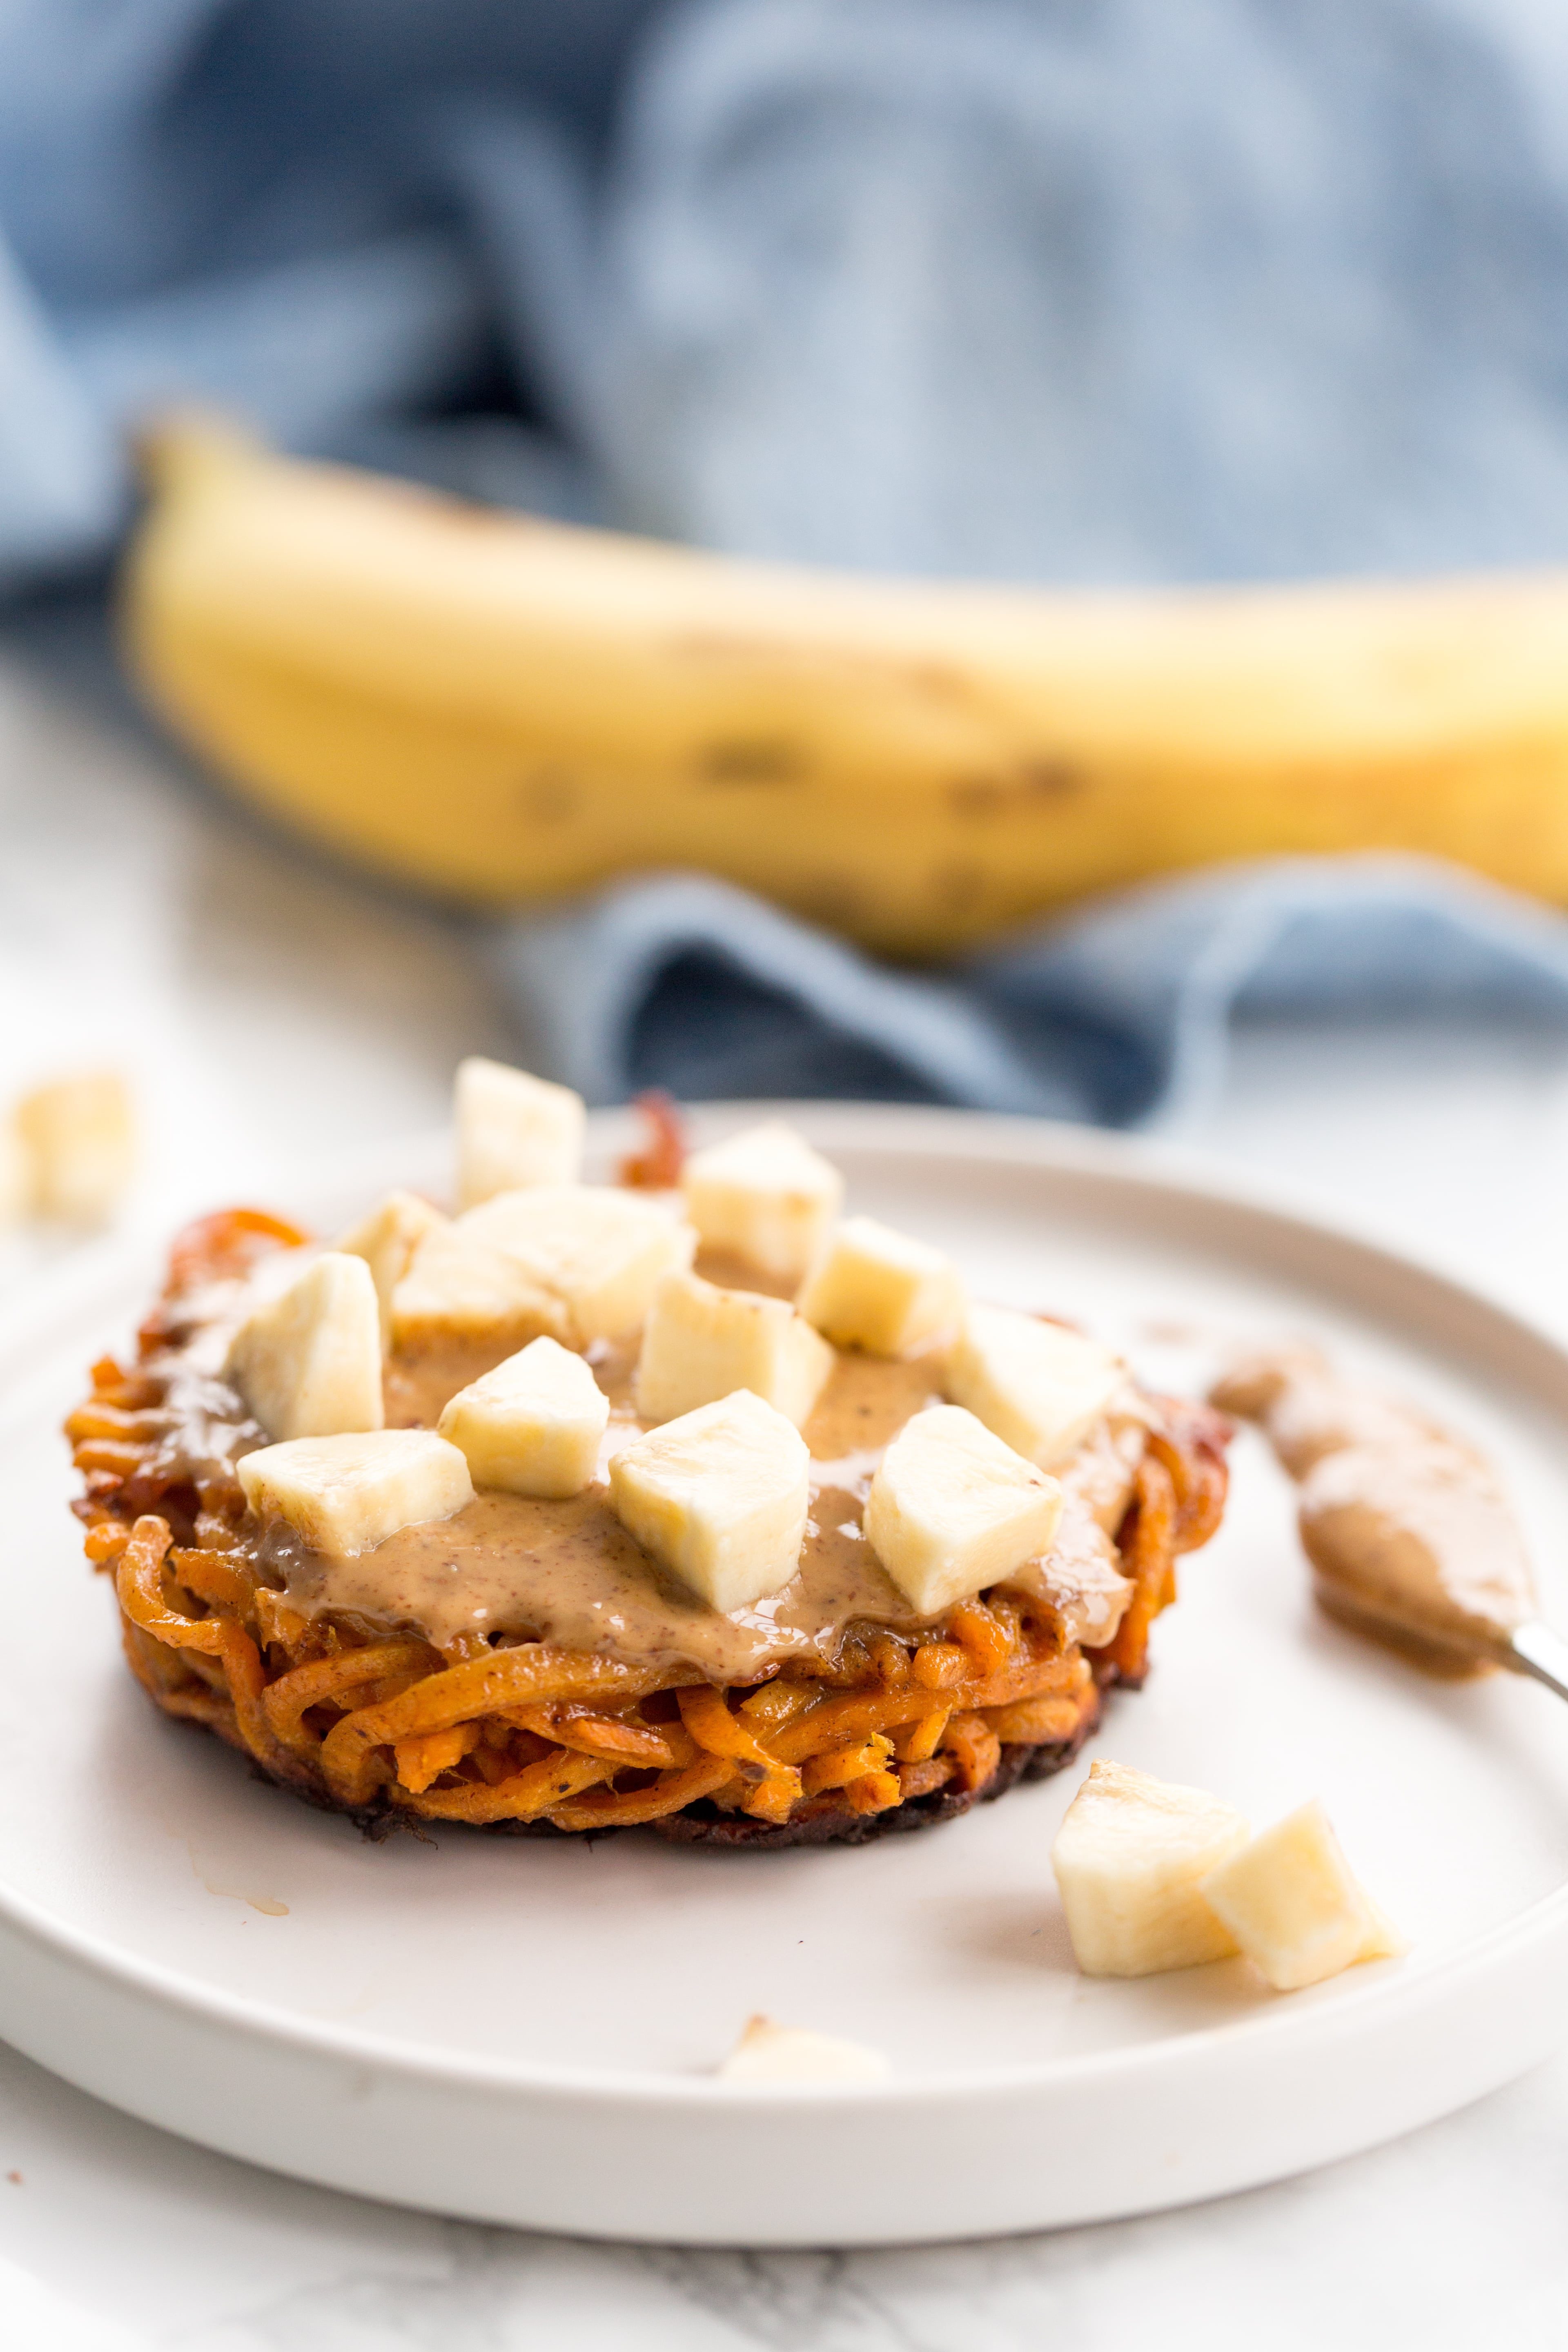 Cinnamon Sweet Potato Bun with Almond Butter